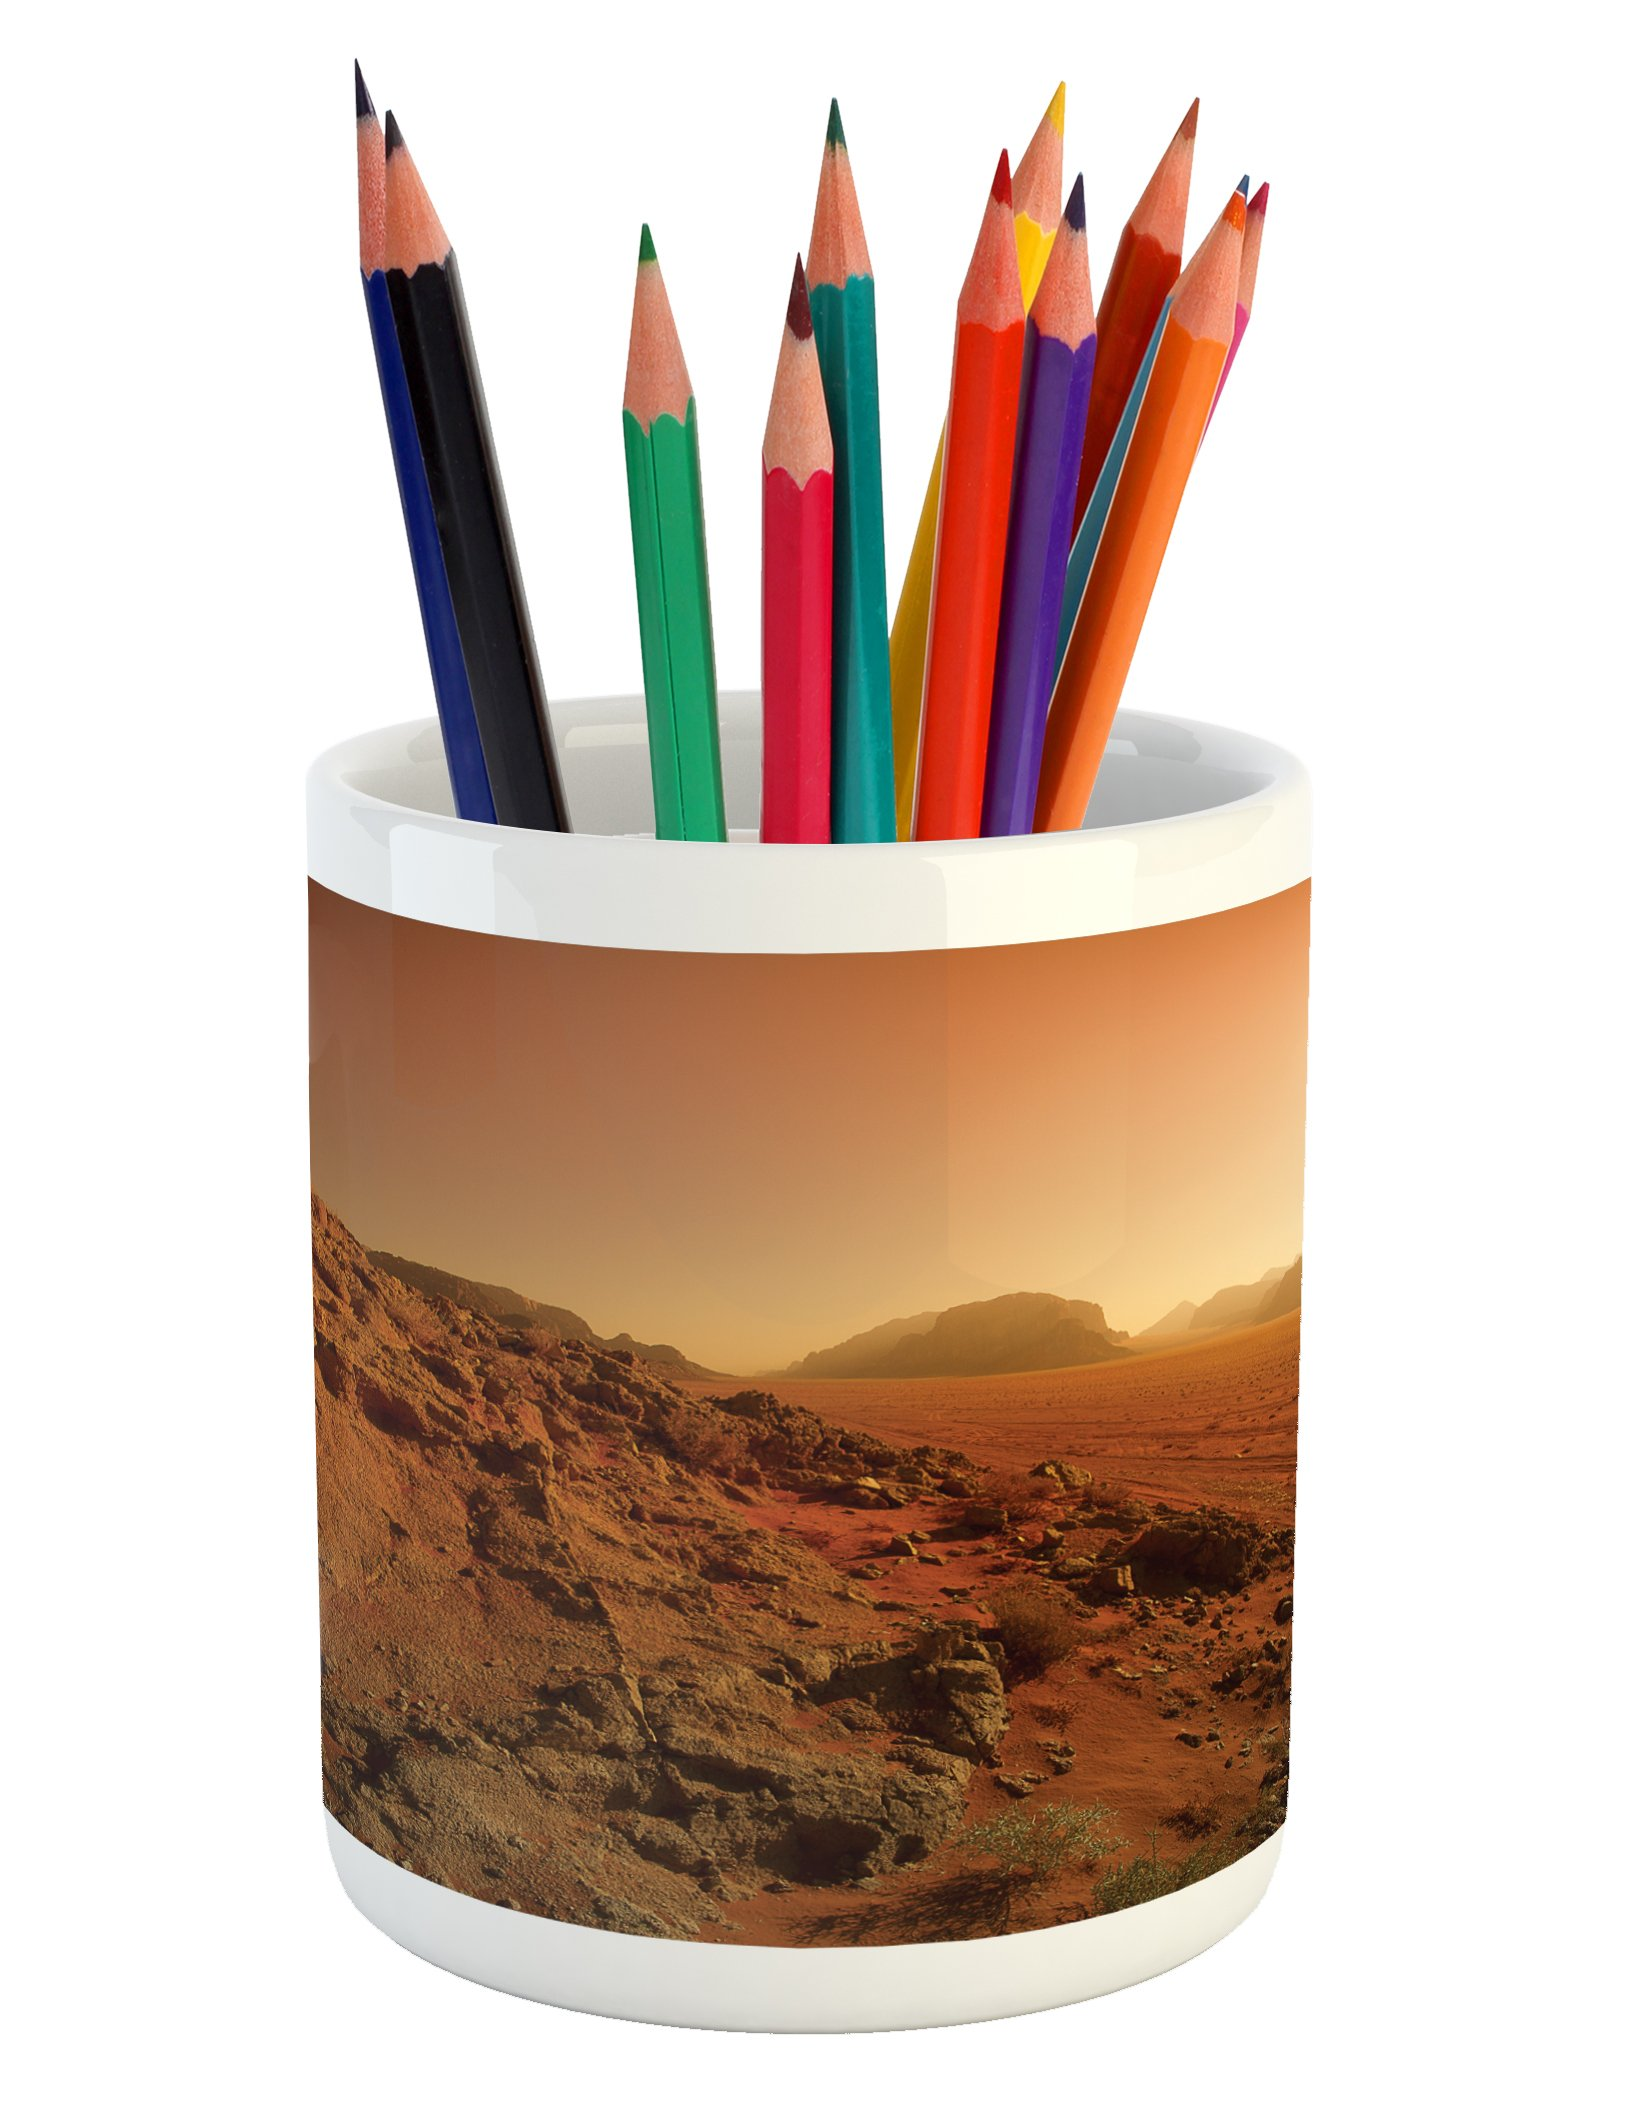 Ambesonne Galaxy Pencil Pen Holder, Landscape from the Movie Fantastic Fictional Galaxy Clash Pattern Sunset Mountains, Printed Ceramic Pencil Pen Holder for Desk Office Accessory, Brown Yellow